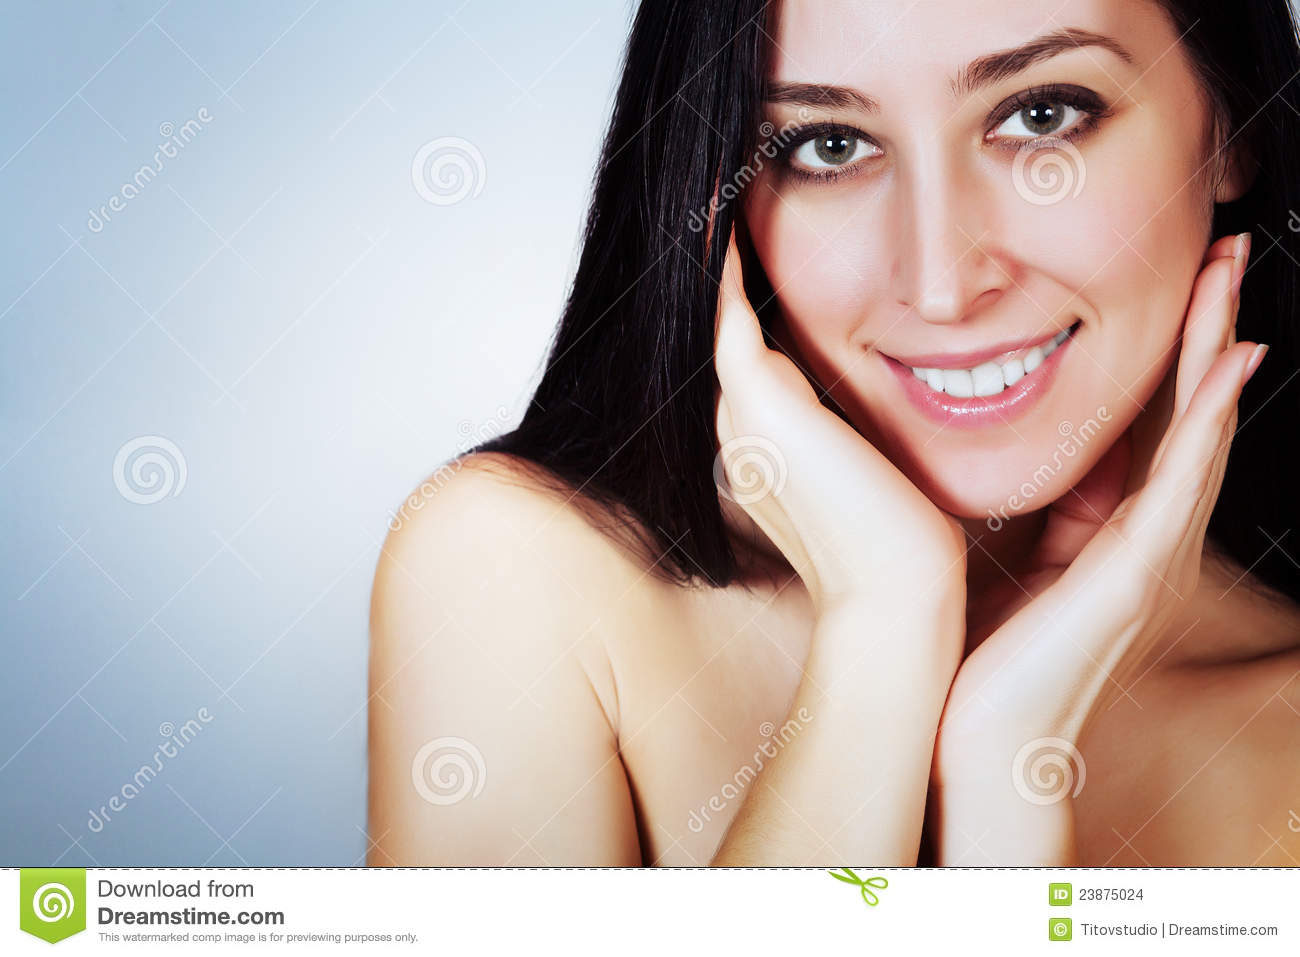 Download Attractive Smiling Woman Portrait Stock Photo - Image of attractive, close: 23875024